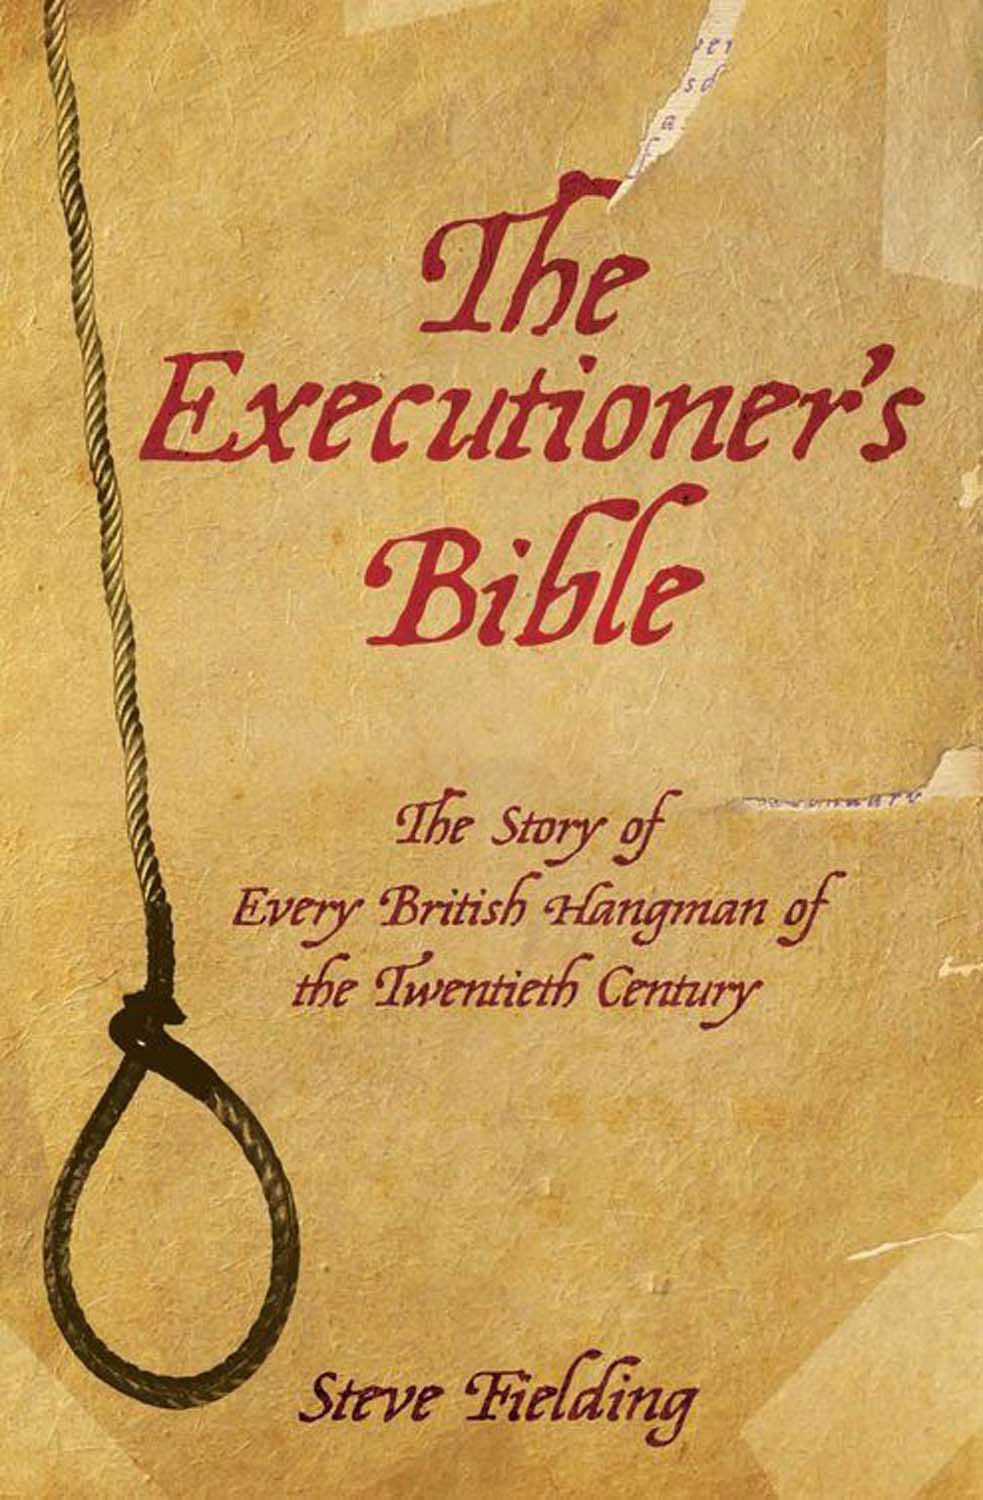 The Executioner's Bible By: Steve Fielding